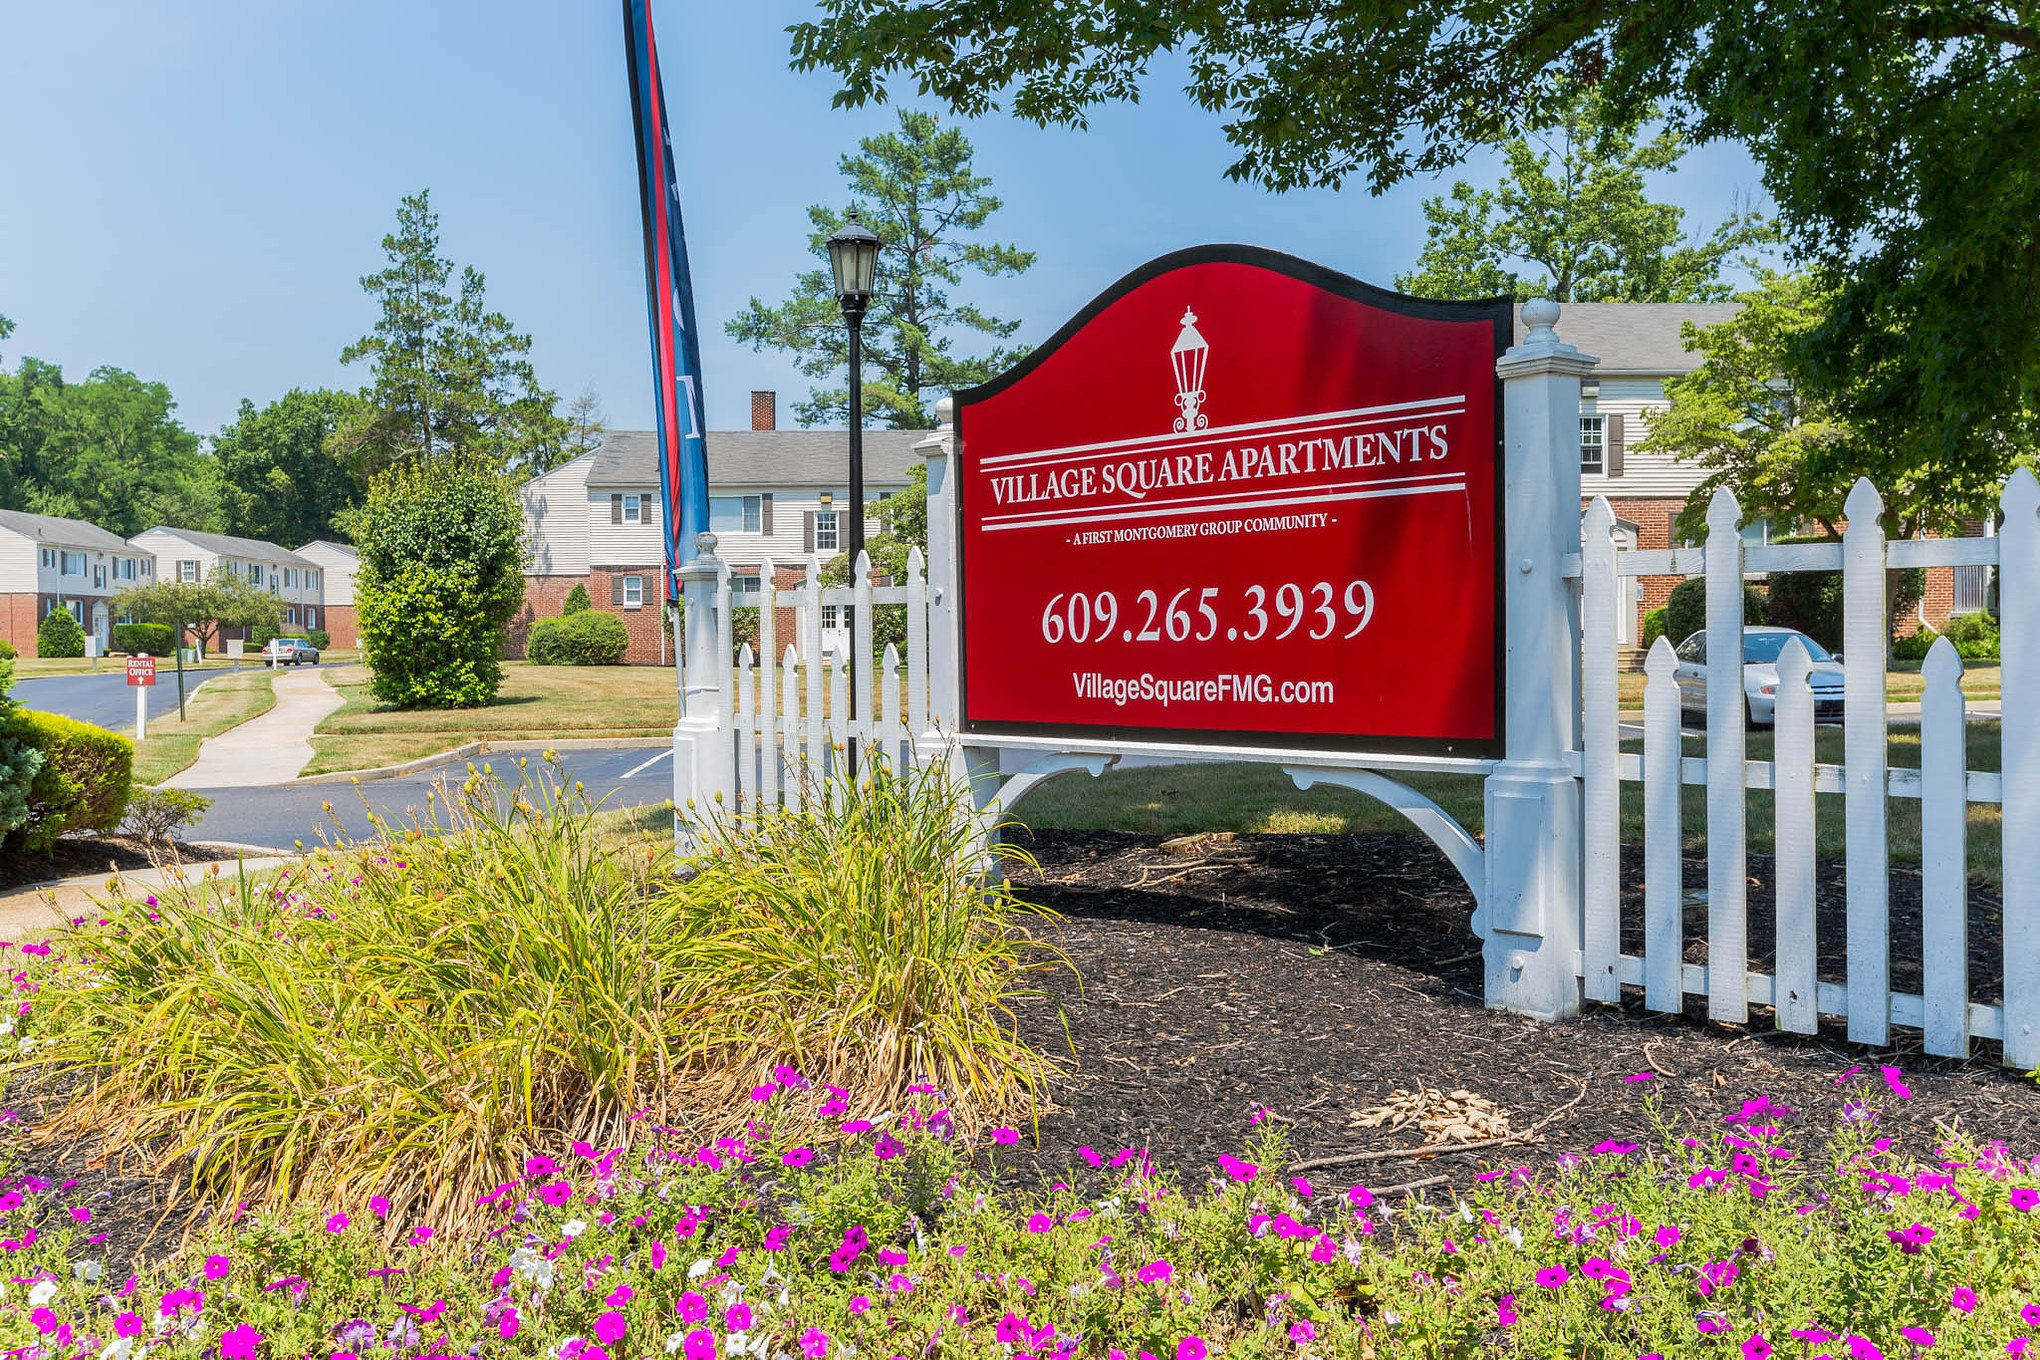 Entrance Sign to Village Square Apartments in Mount Holly, NJ